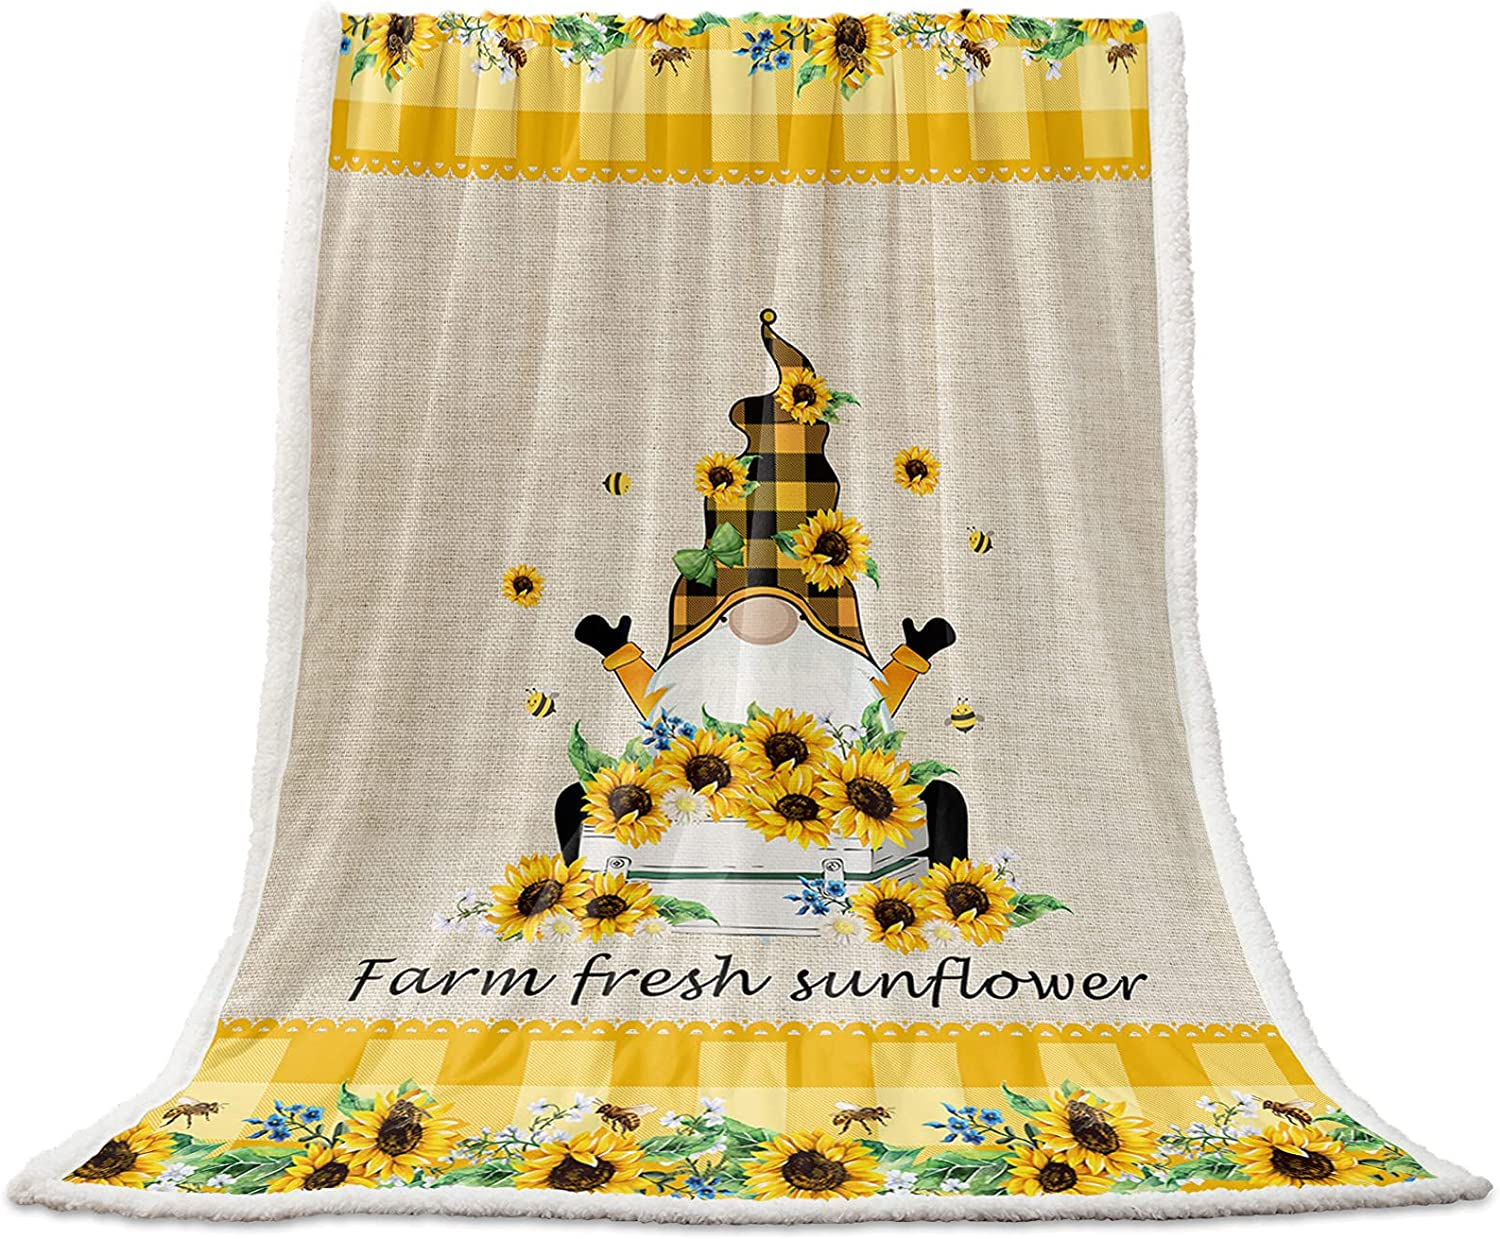 Flannel Fleece Sherpa Blanket Bee Recommended Fuzzy Super beauty product restock quality top! Sunflowers Cozy Li Gnome